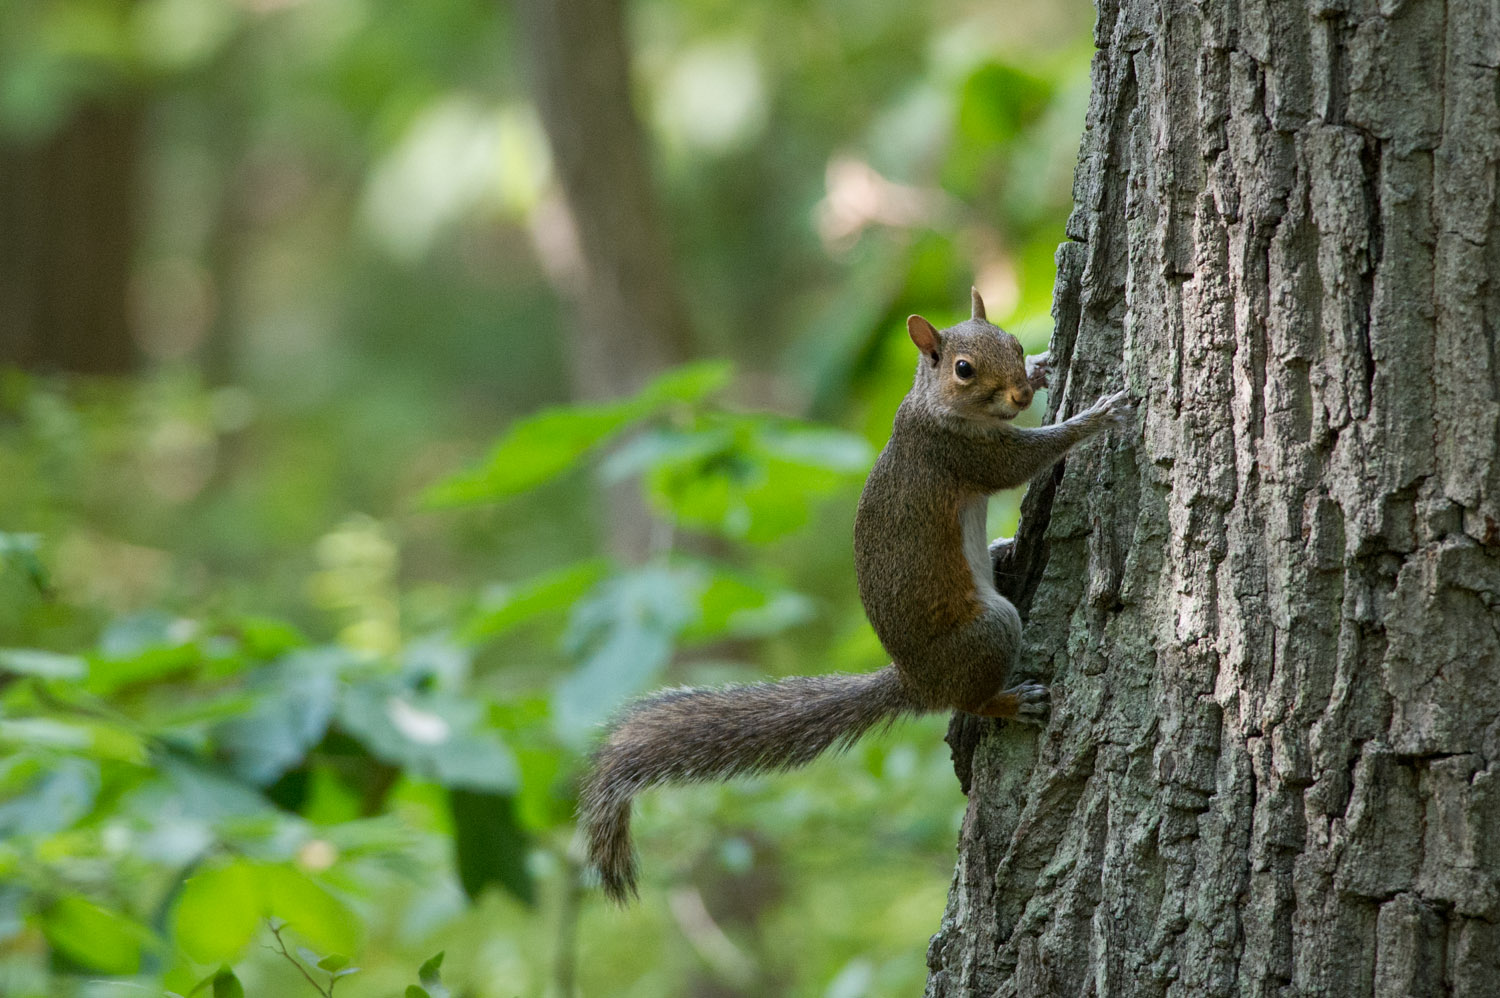 A small Gray Squirrel hanging onto the side of the tree to check me out.